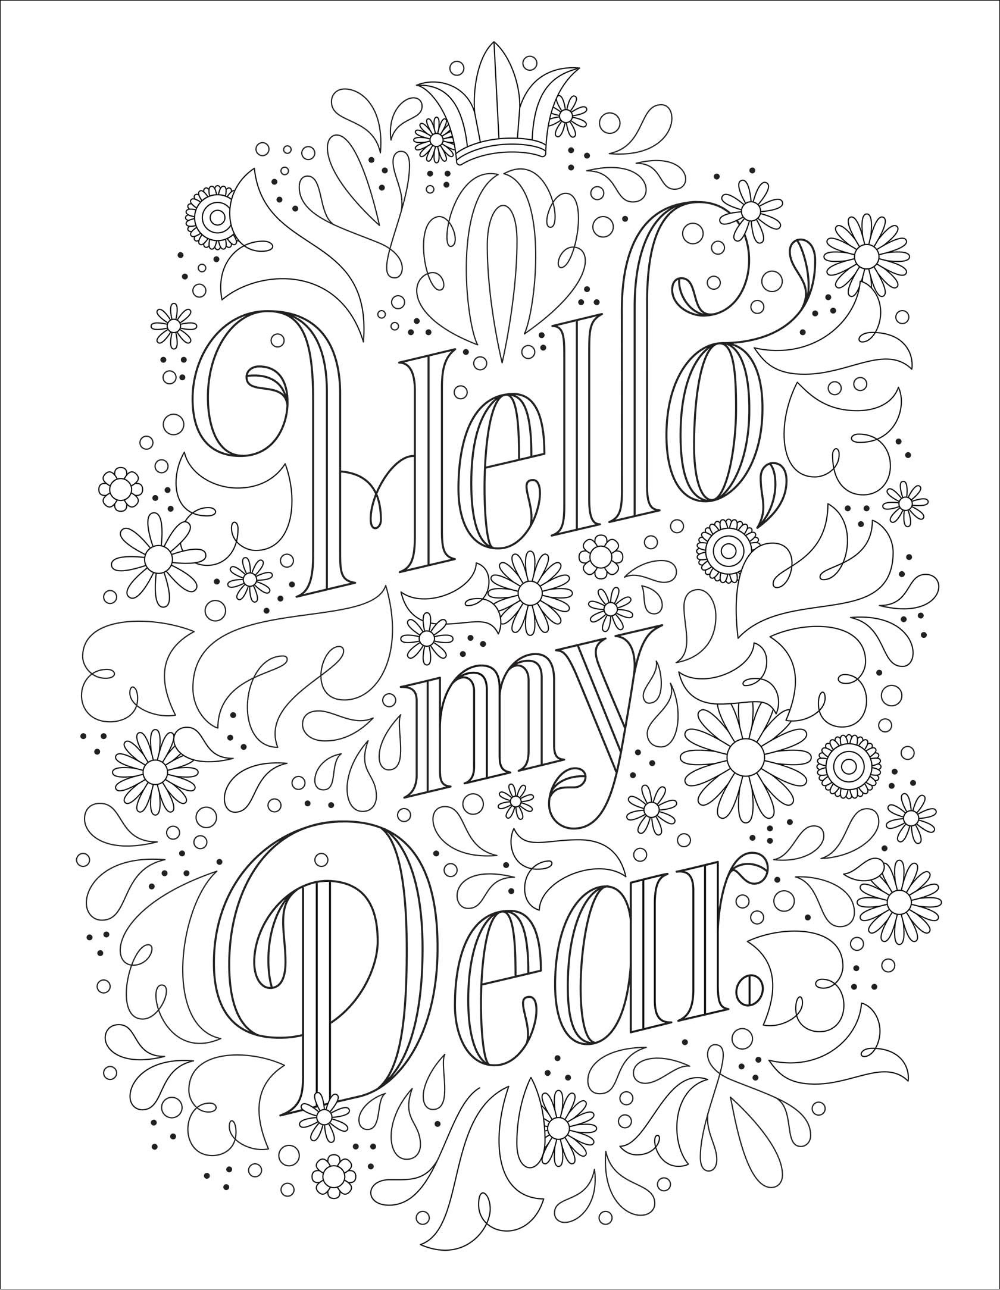 Harper Collins Coloring Book Quotes Quote Coloring Pages Coloring Books